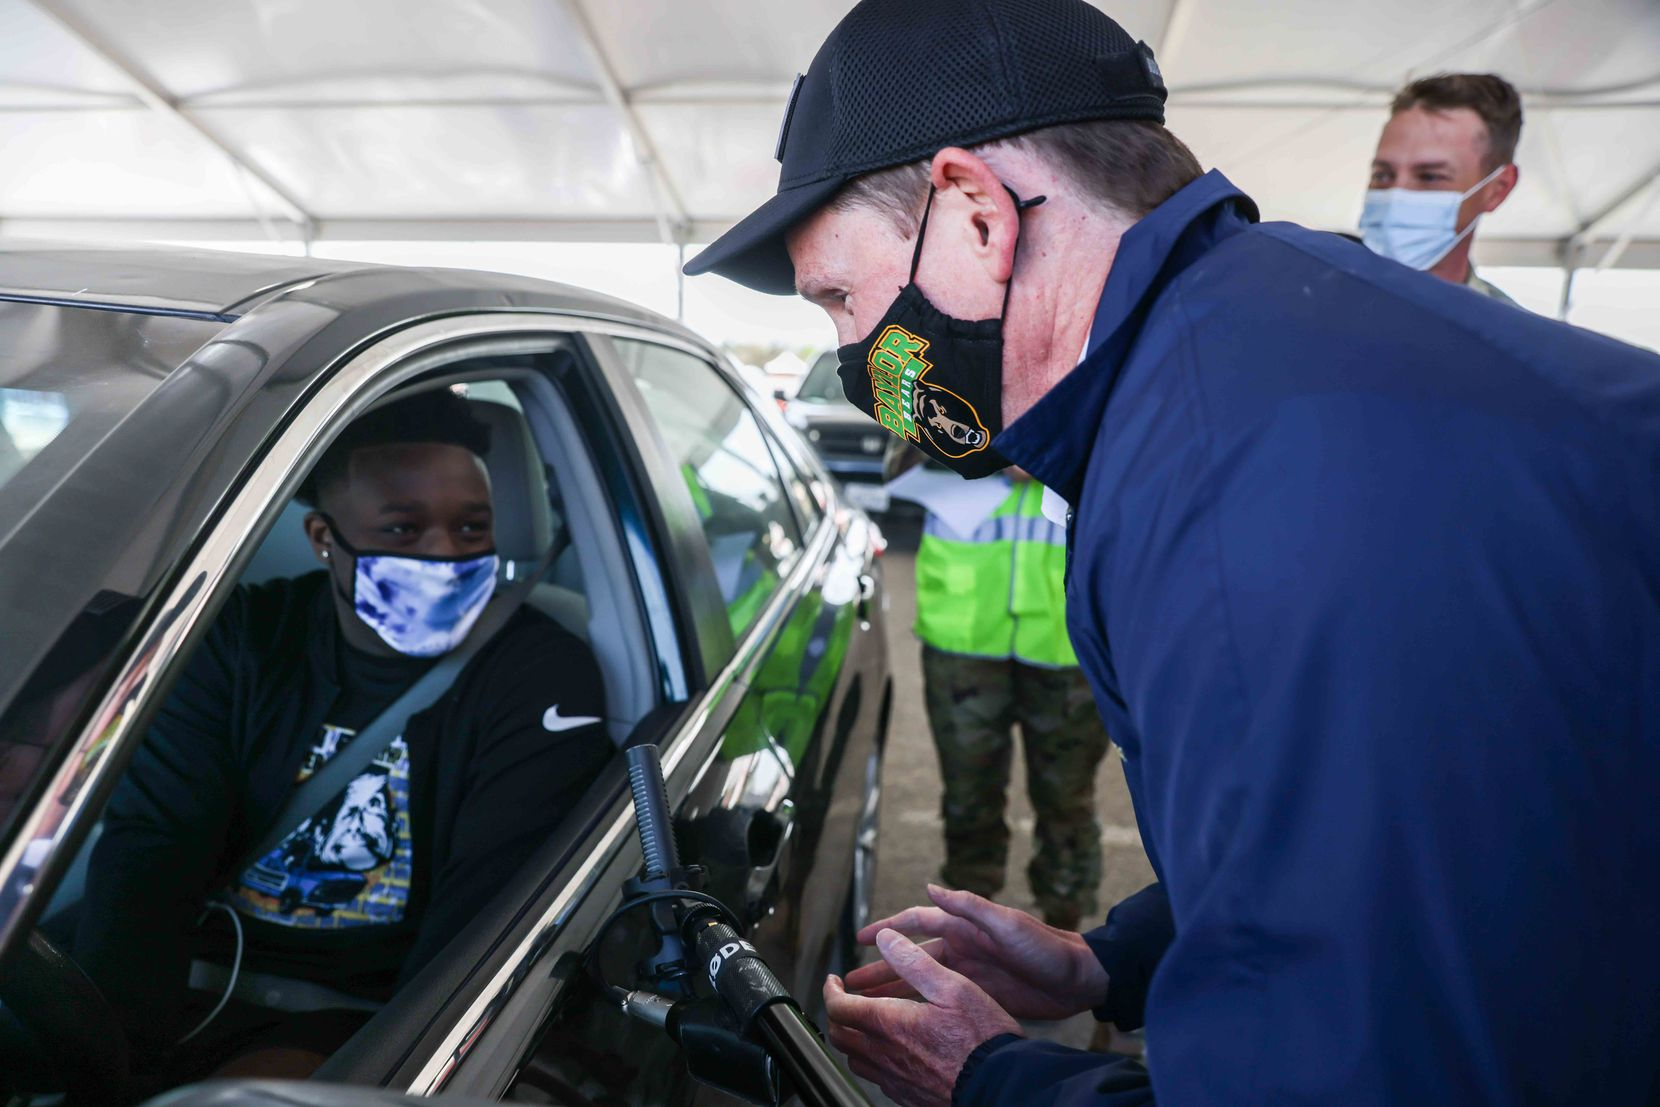 Dallas County Judge Clay Jenkins talked to Quincy Williams, 20, before he received the 250,000th vaccine provided by Dallas County at Fair Park.